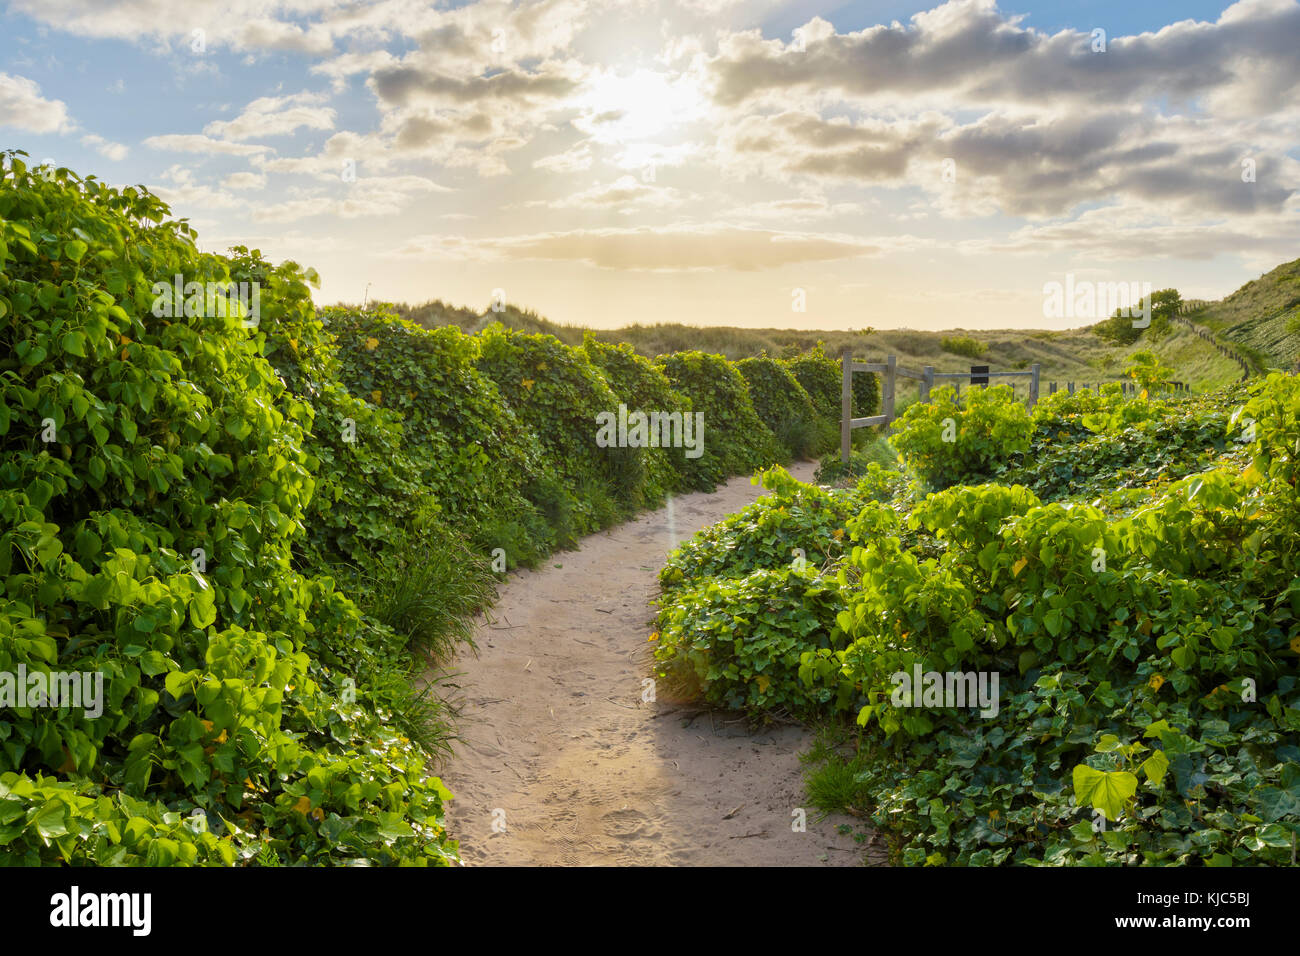 Sunny morning with a pathway lined with ivy plants next to the sand dunes at Bamburgh in Northumberland, England, - Stock Image